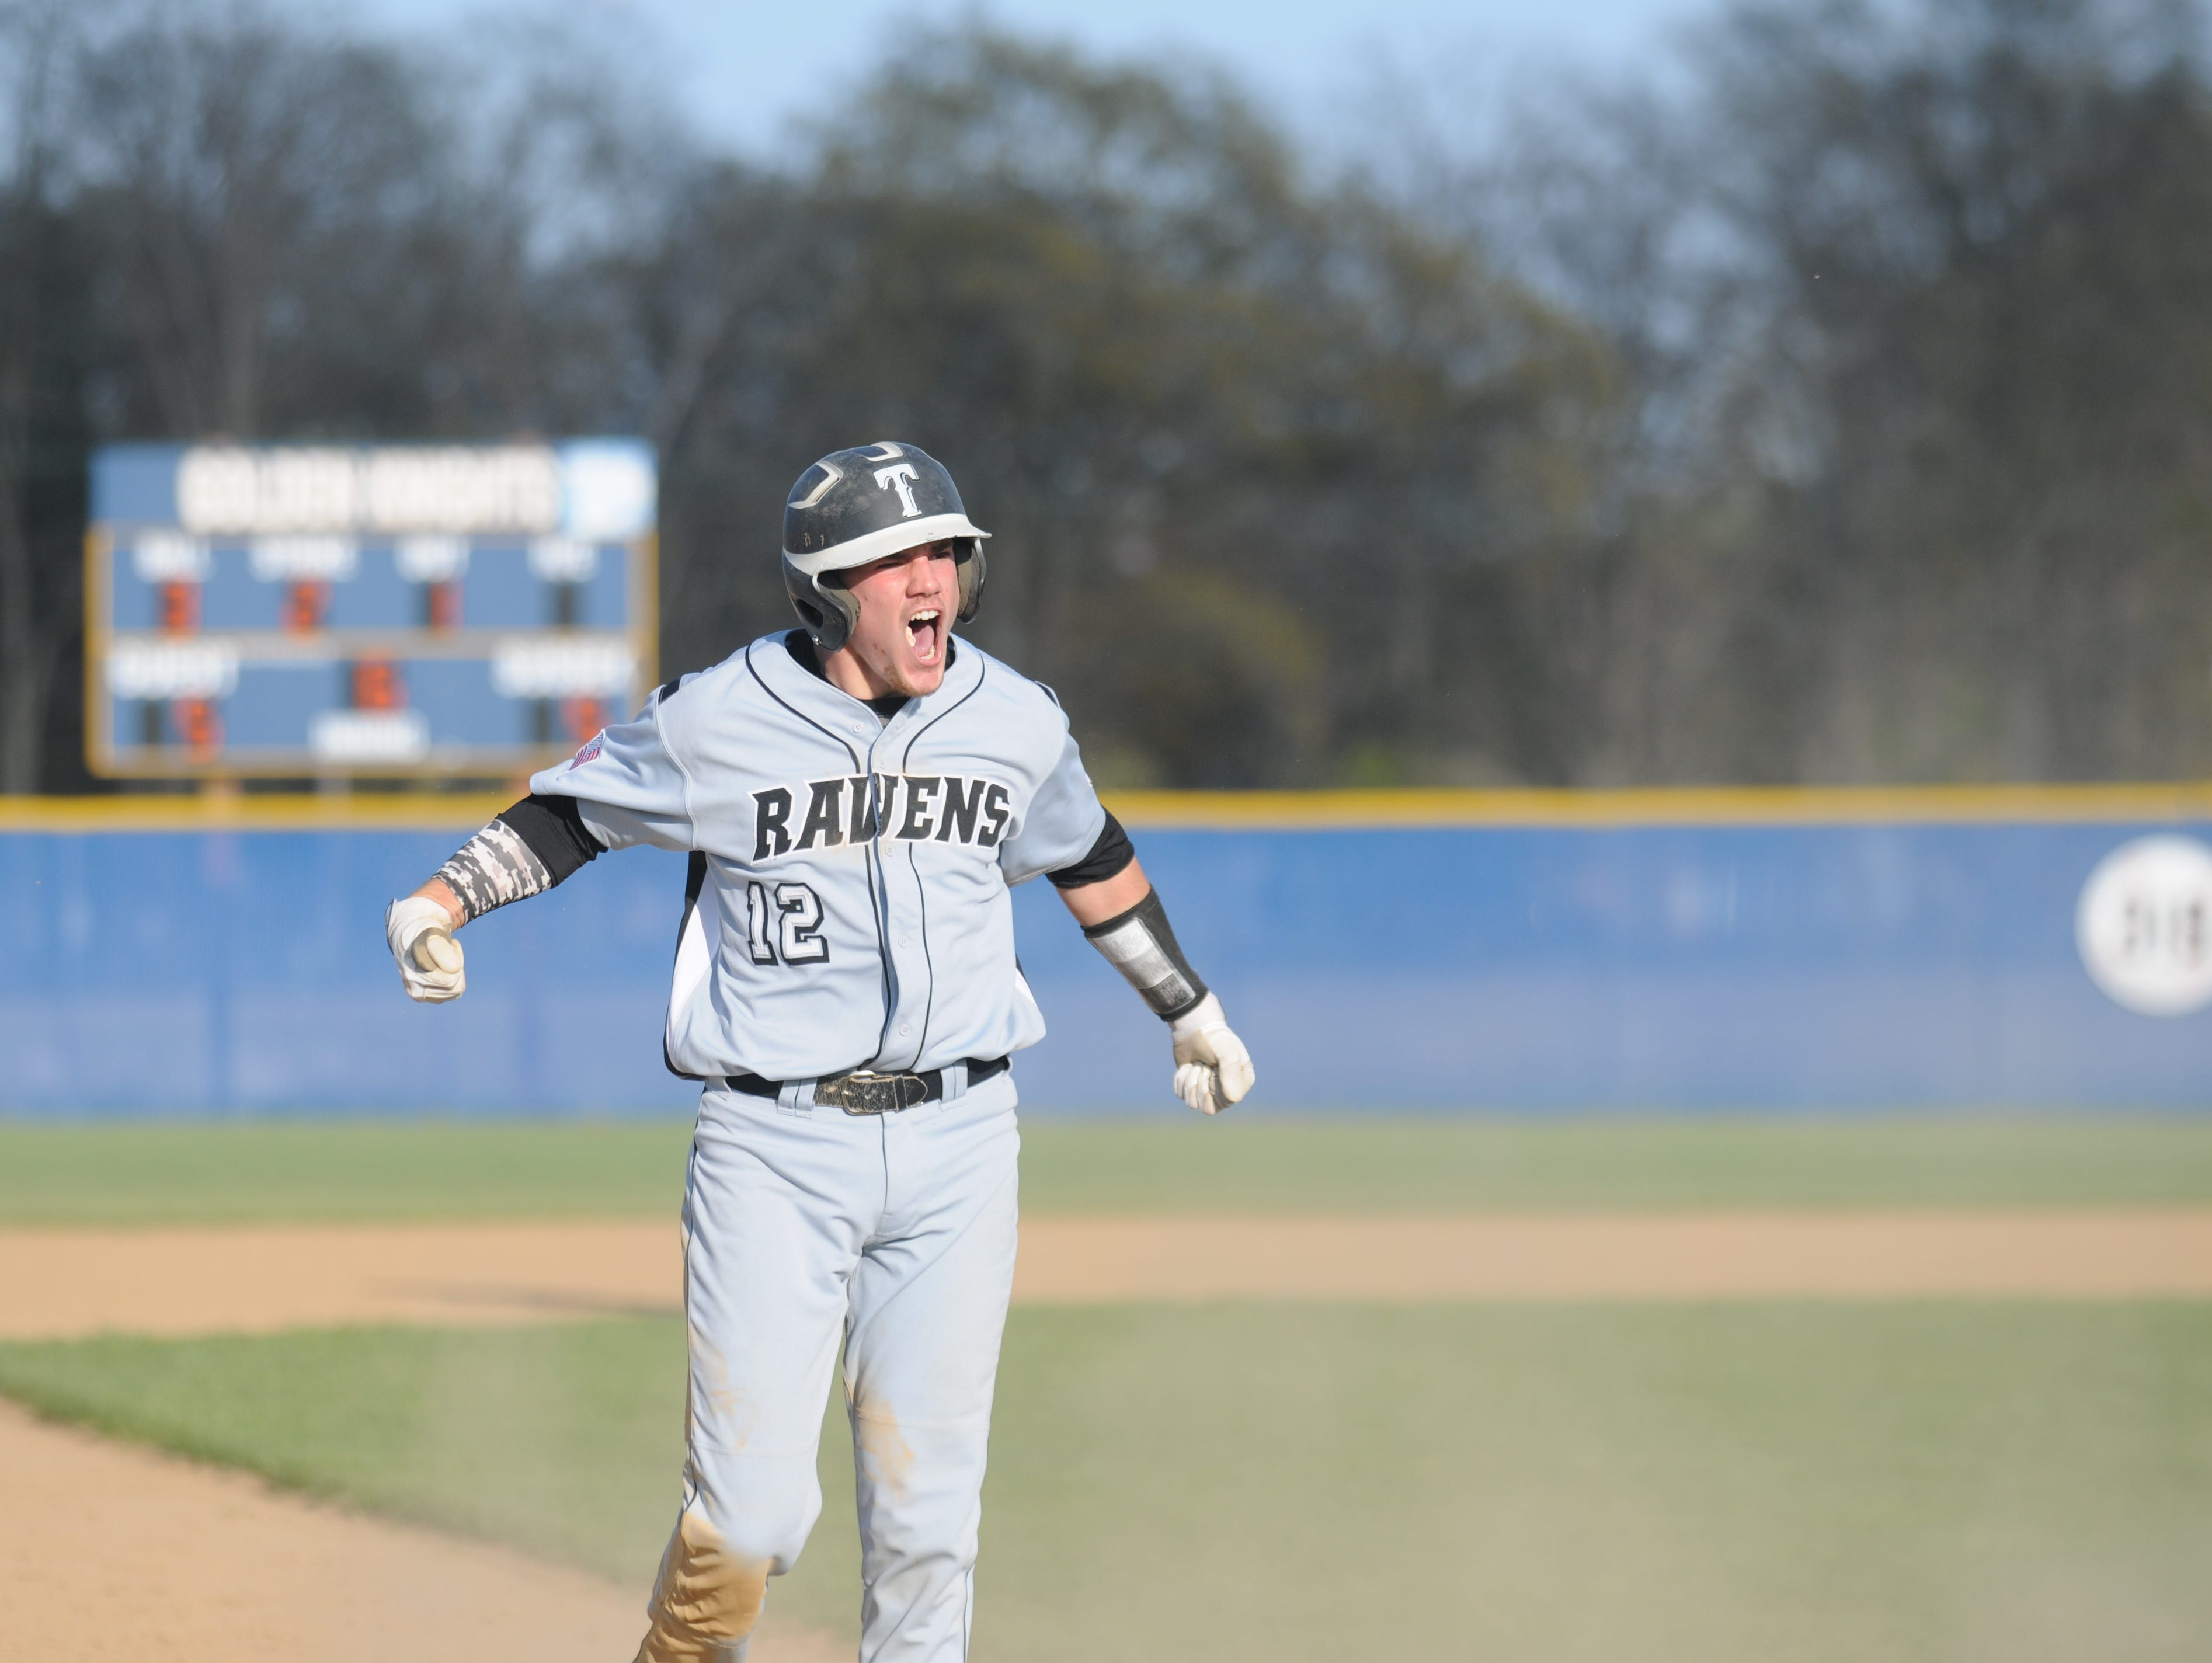 Sussex Tech's Colin Bergh pounds his chest after a triple that scored the go-ahead run in the sixth inning against Sussex Central in 2014.